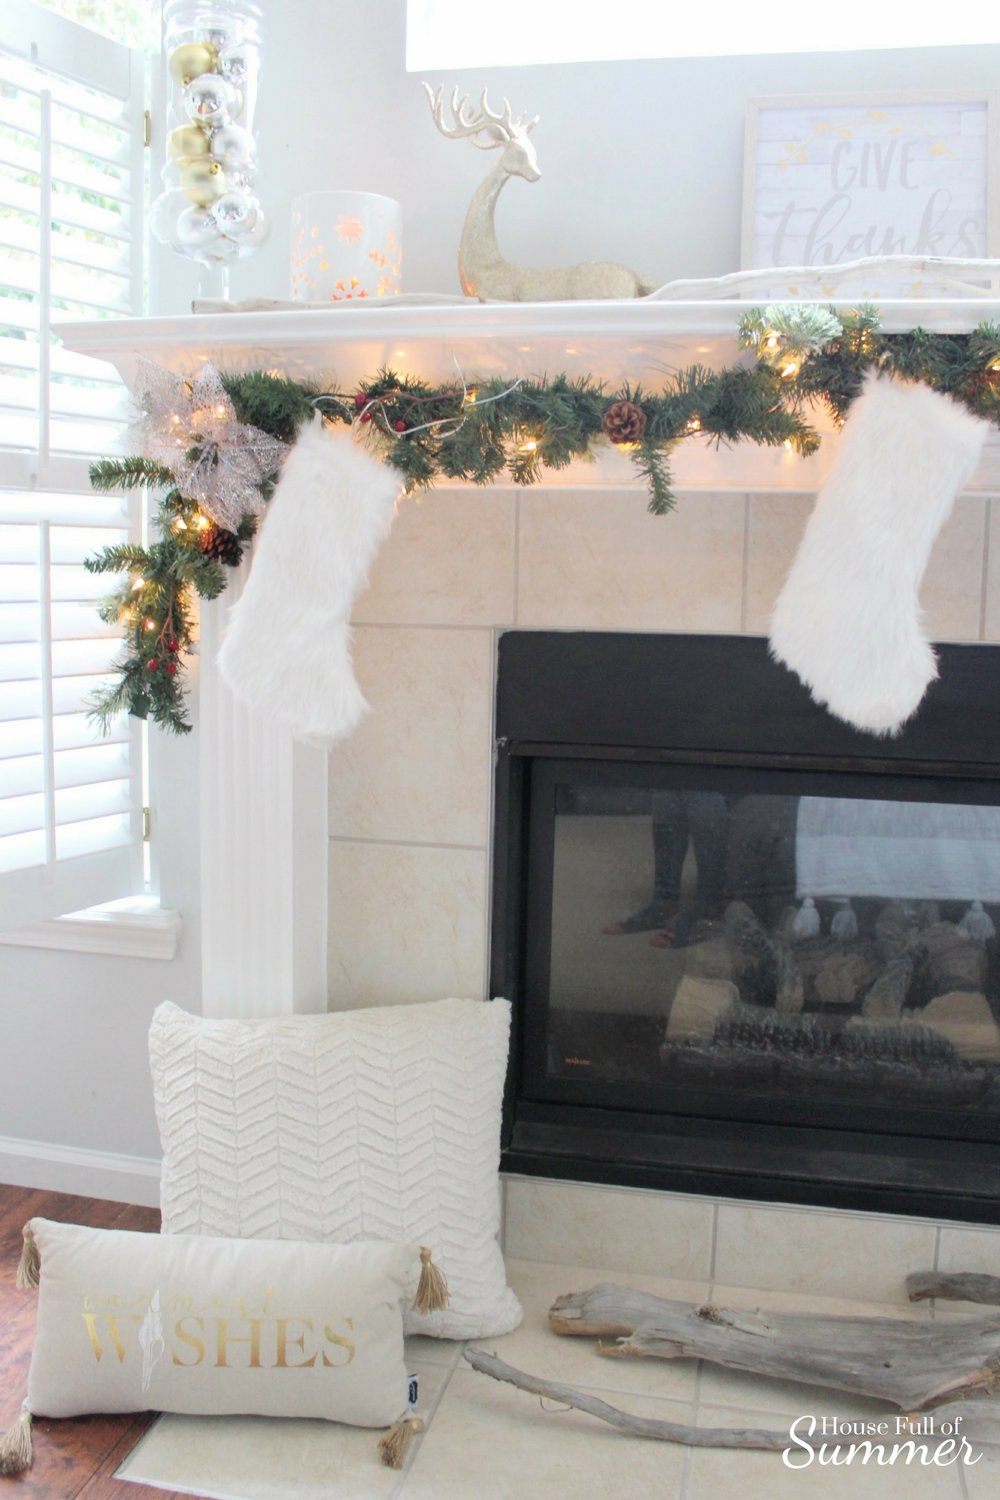 Classy Christmas Home Tour {Part Two} | House Full of Summer blog - mantel decor, christmas mantel ideas, coastal christmas mantel, silver and gold coastal decor, windows over mantel, white fur stockings, gold reindeer, driftwood, coastal home ideas